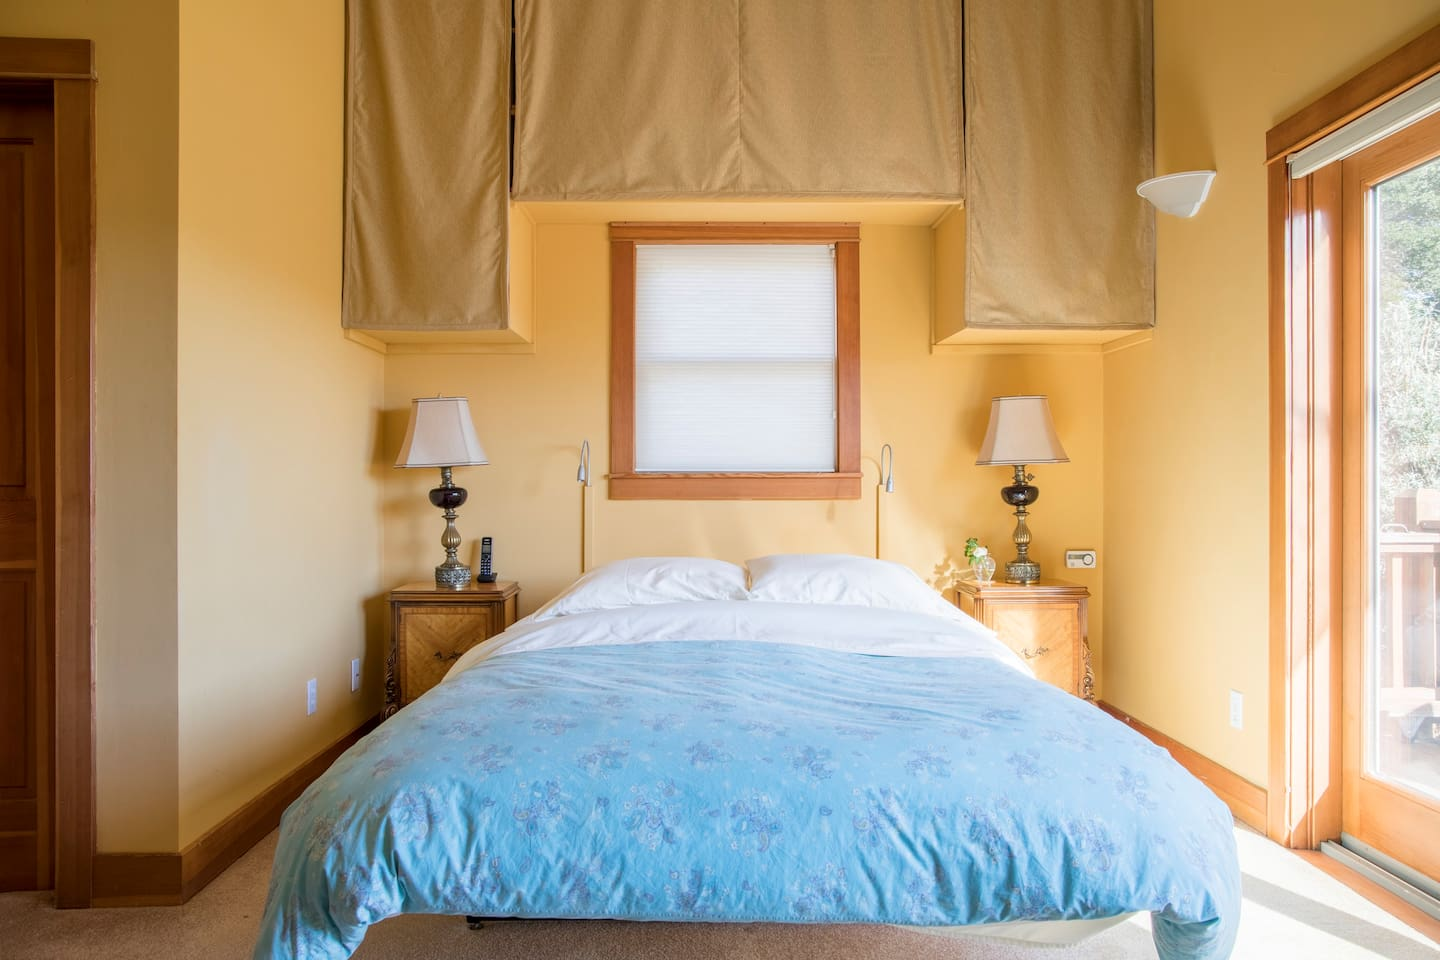 Ready for a good nights sleep?  Comfy bed, crisp sheets and easy to adjust reading lamps make for a relaxing and cosy night.